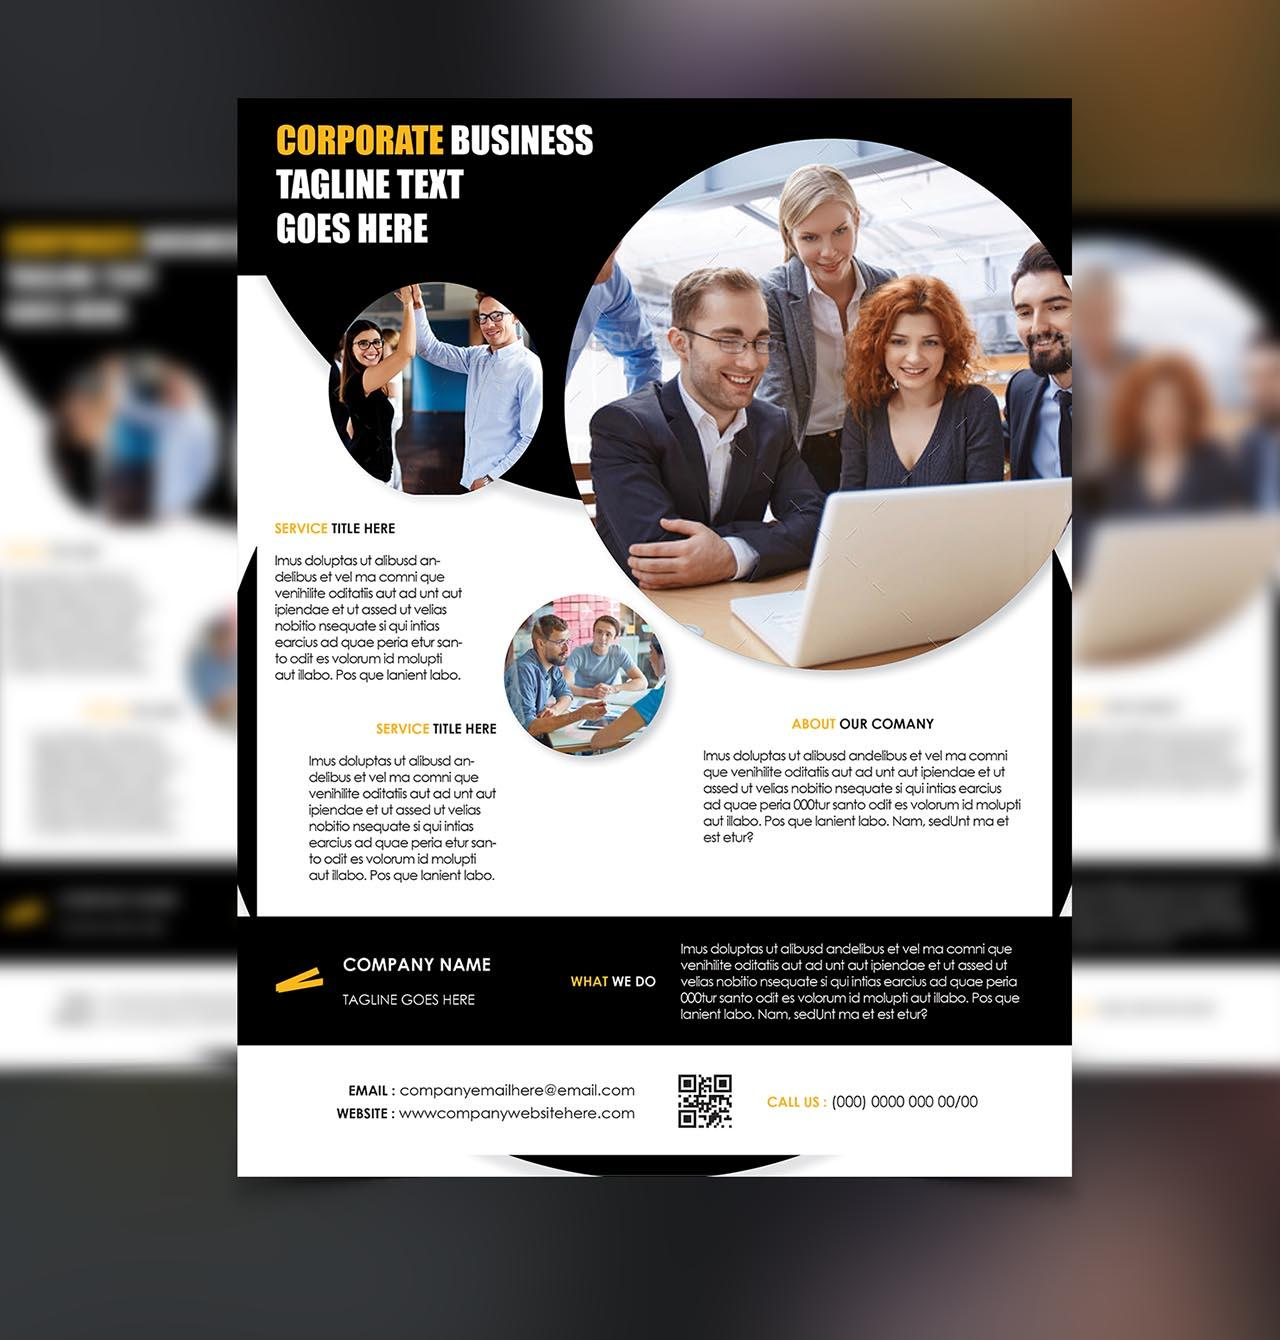 Creative Corporate Business Flyer/Poster Design  by arnabkumar - 95399